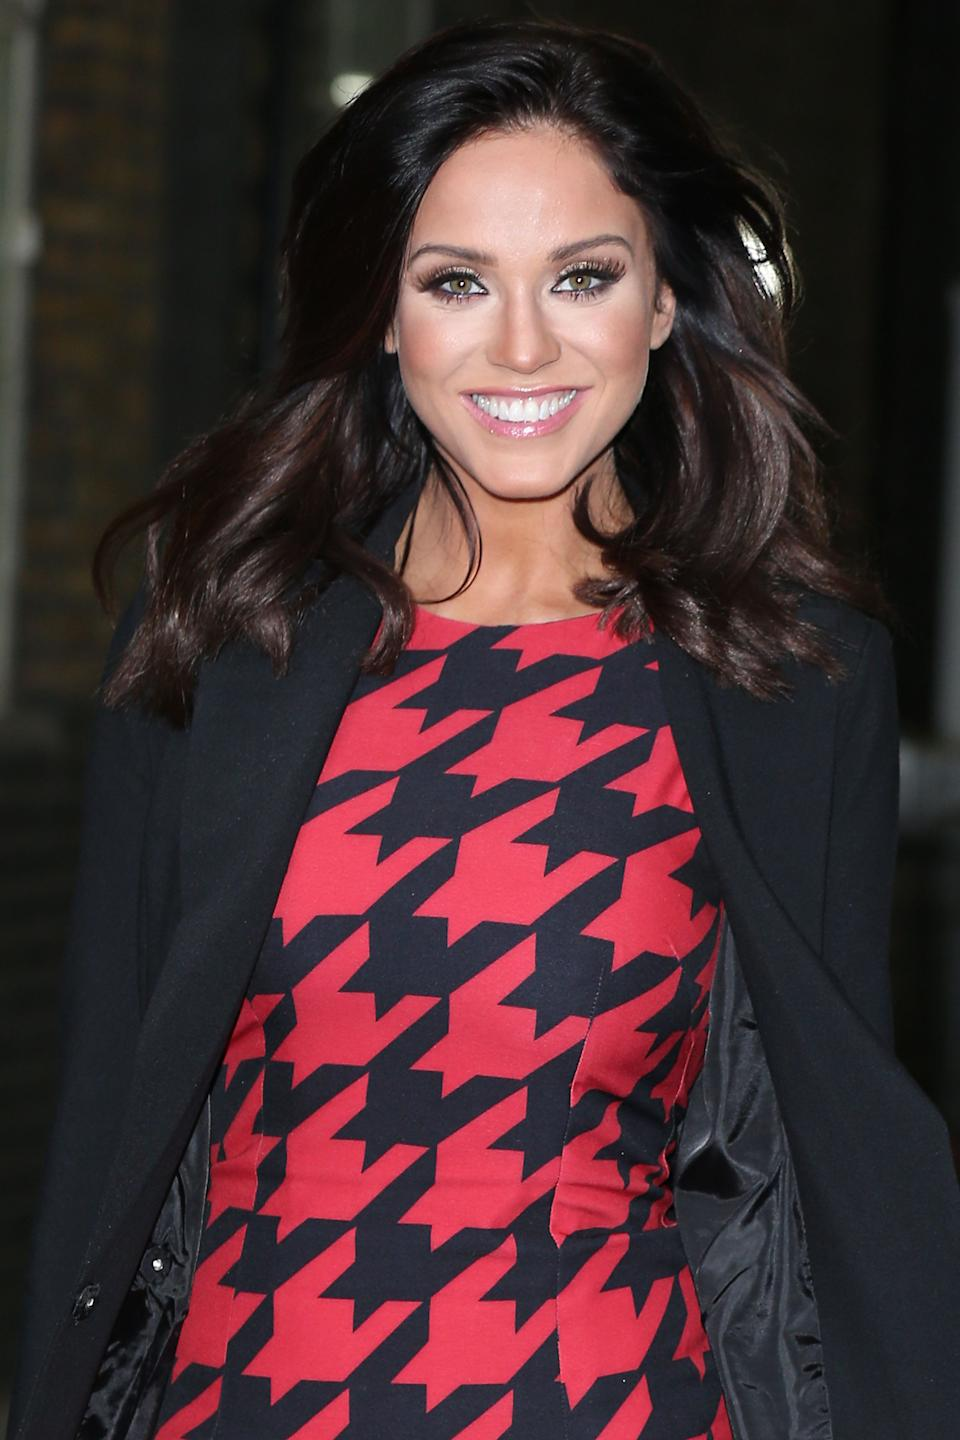 Vicky's shocking behaviour with her fellow Geordie Shore cast members eventually landed her appearances on Ex On The Beach, as well as a reality show of her own, Judge Geordie.<br /><br />However, it was when she made her late arrival in the I'm A Celebrity jungle that she won over the British public, turning things around for herself and carving a new career as a TV personality.<br /><br />She later appeared as a contestant on the Australian version of the show, where she once again made it all the way to the end.